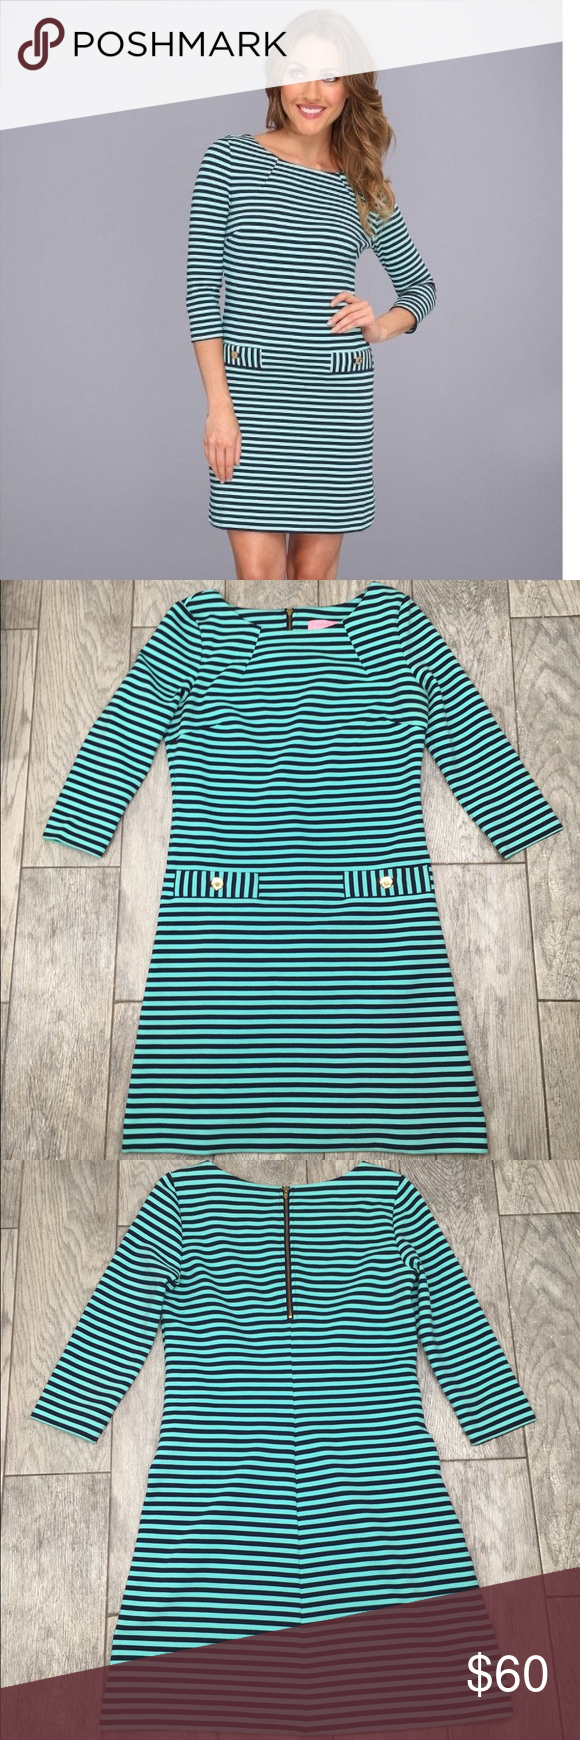 Lilly Pulitzer Charlene dress aqua and navy stripe Lilly Pulitzer Charlene dress. Aqua and navy stripes, and gold accent buttons. 3/4 sleeves and above knee length. Adorable dress! EUC- no flaws or damage. Size small Lilly Pulitzer Dresses